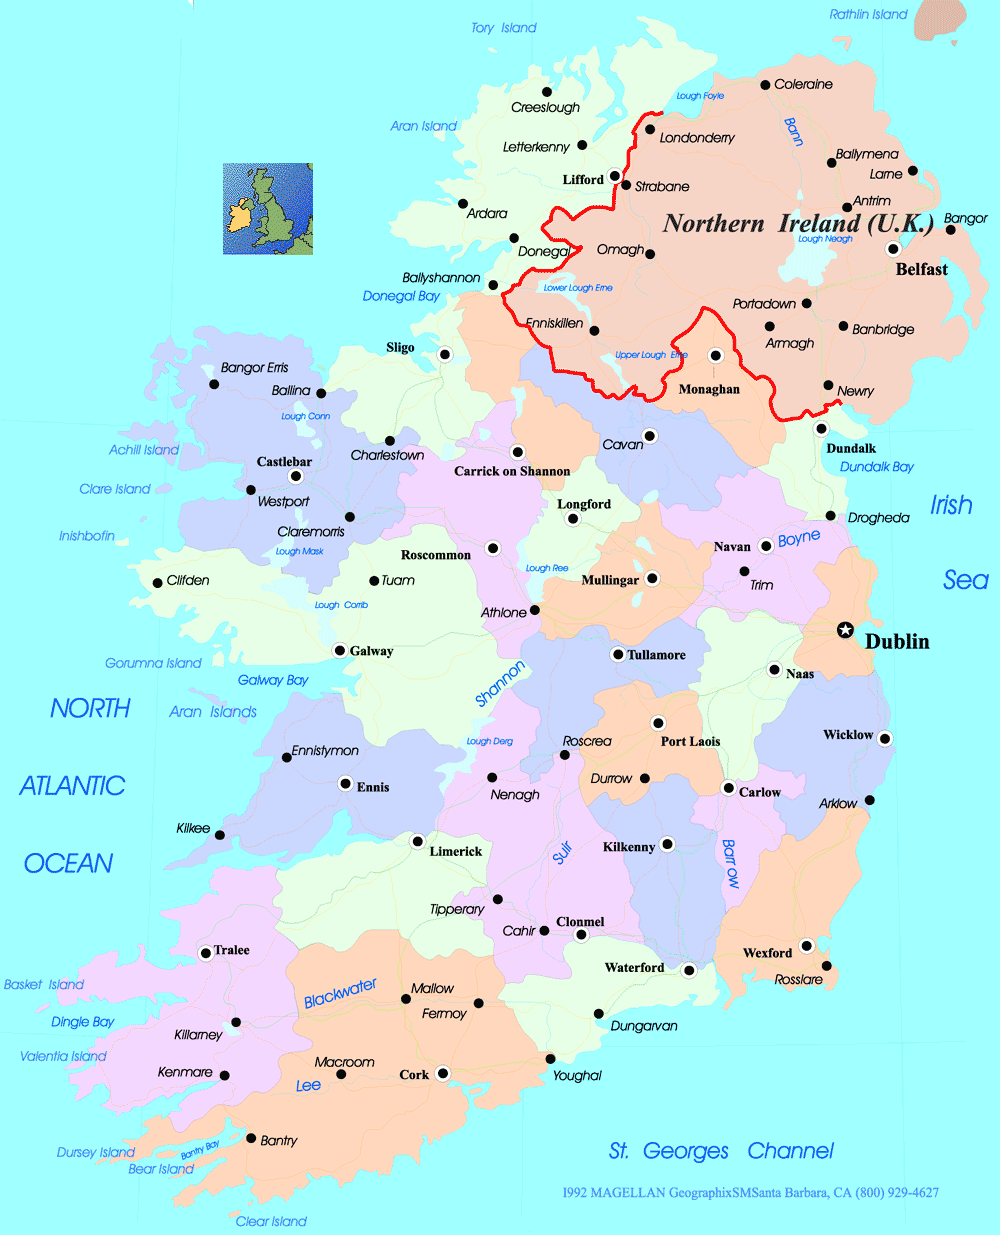 Map Of Ireland Islands.Ireland Political Map Mapsof Net